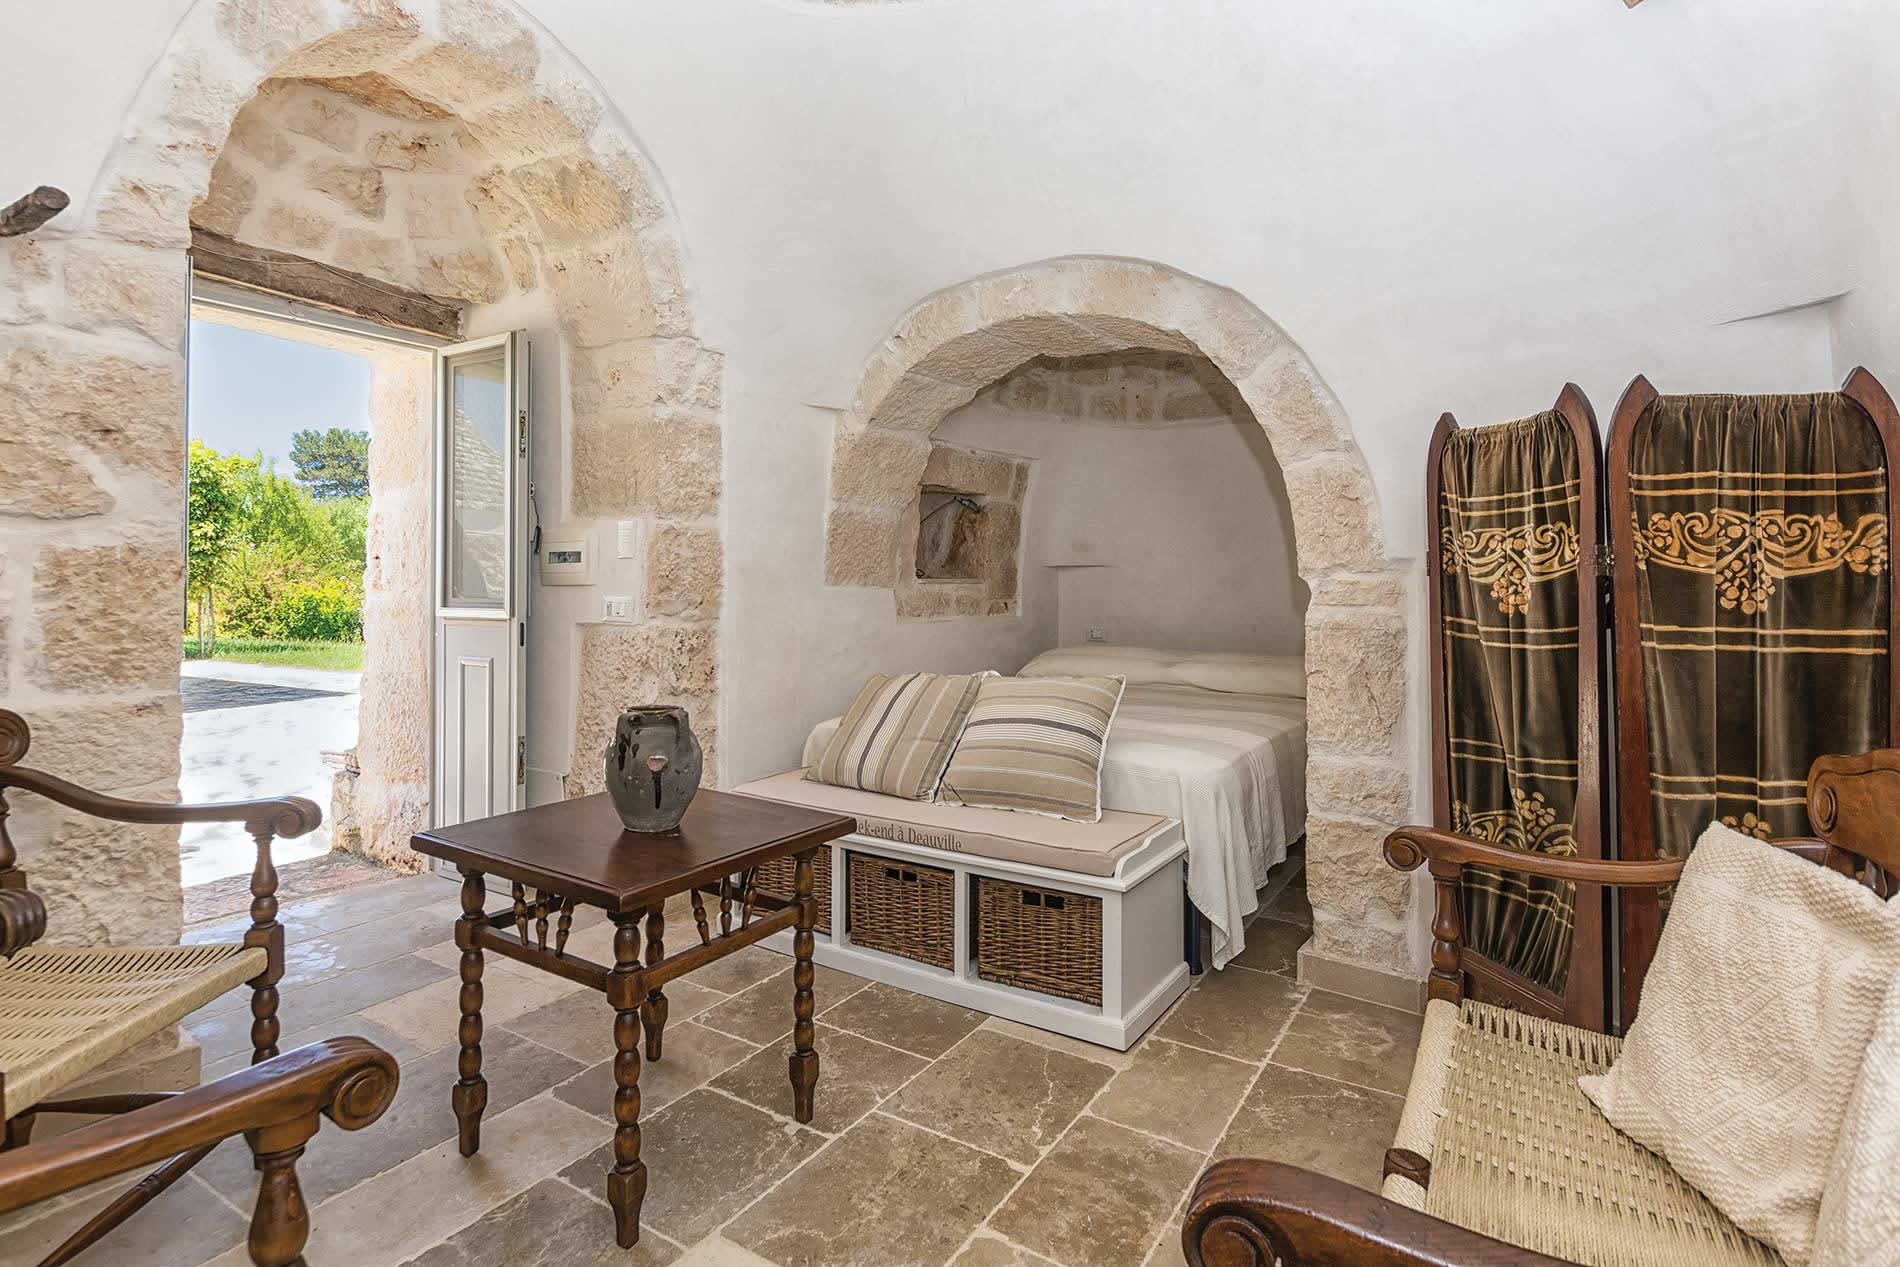 Villa Trullo Patrizia in Ceglie Messapica - sleeps 4 people